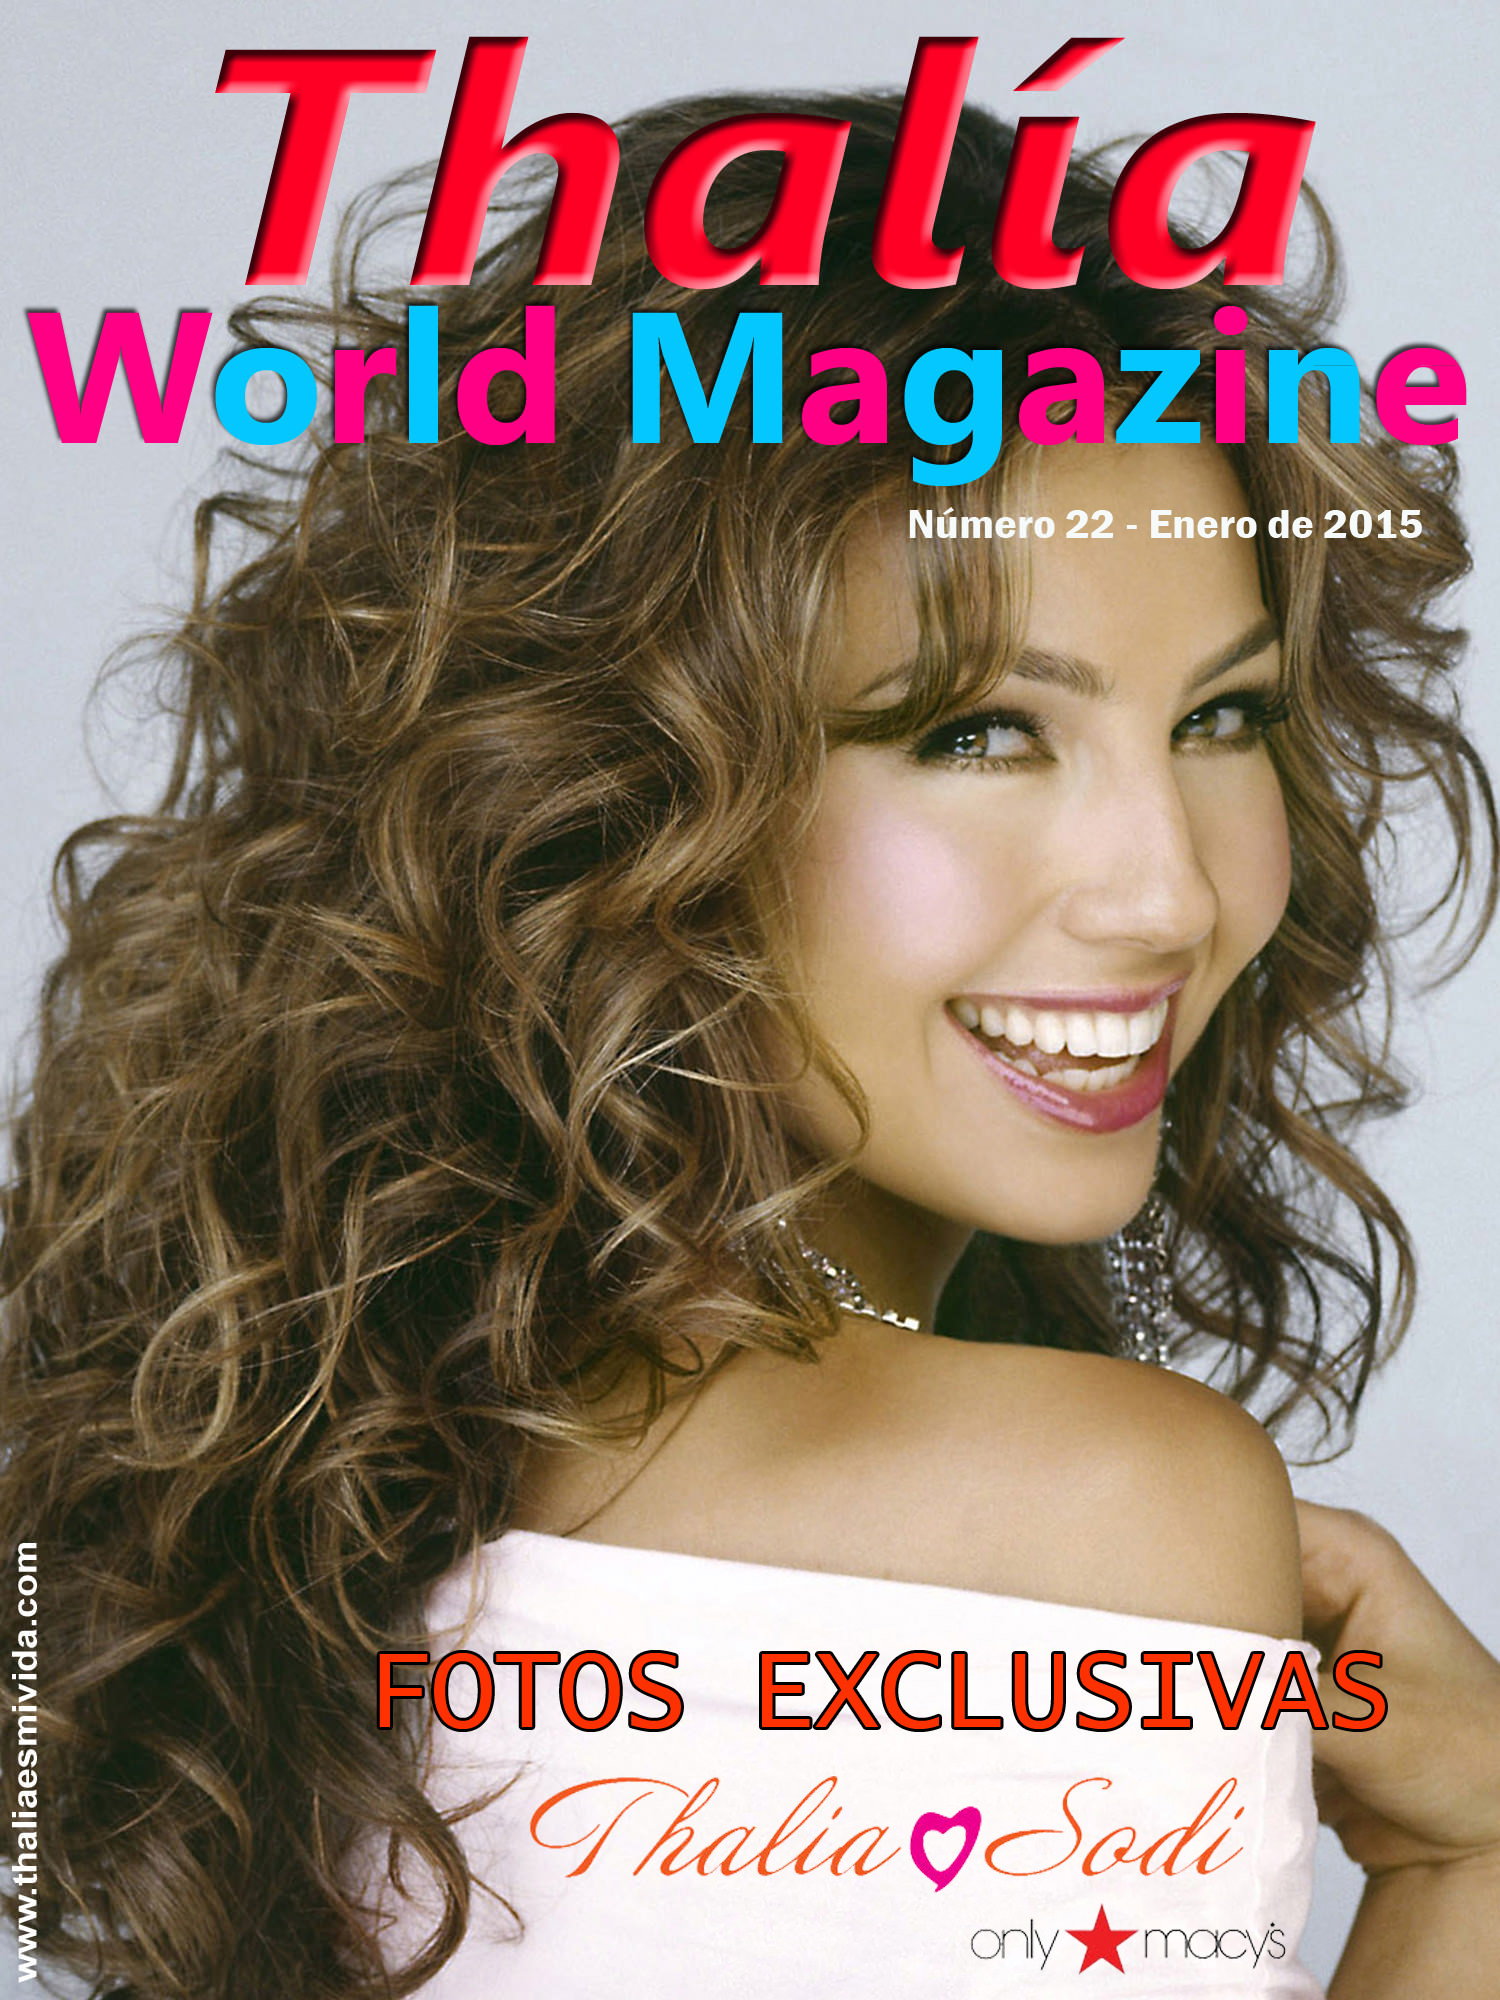 Thalia World Magazine 22